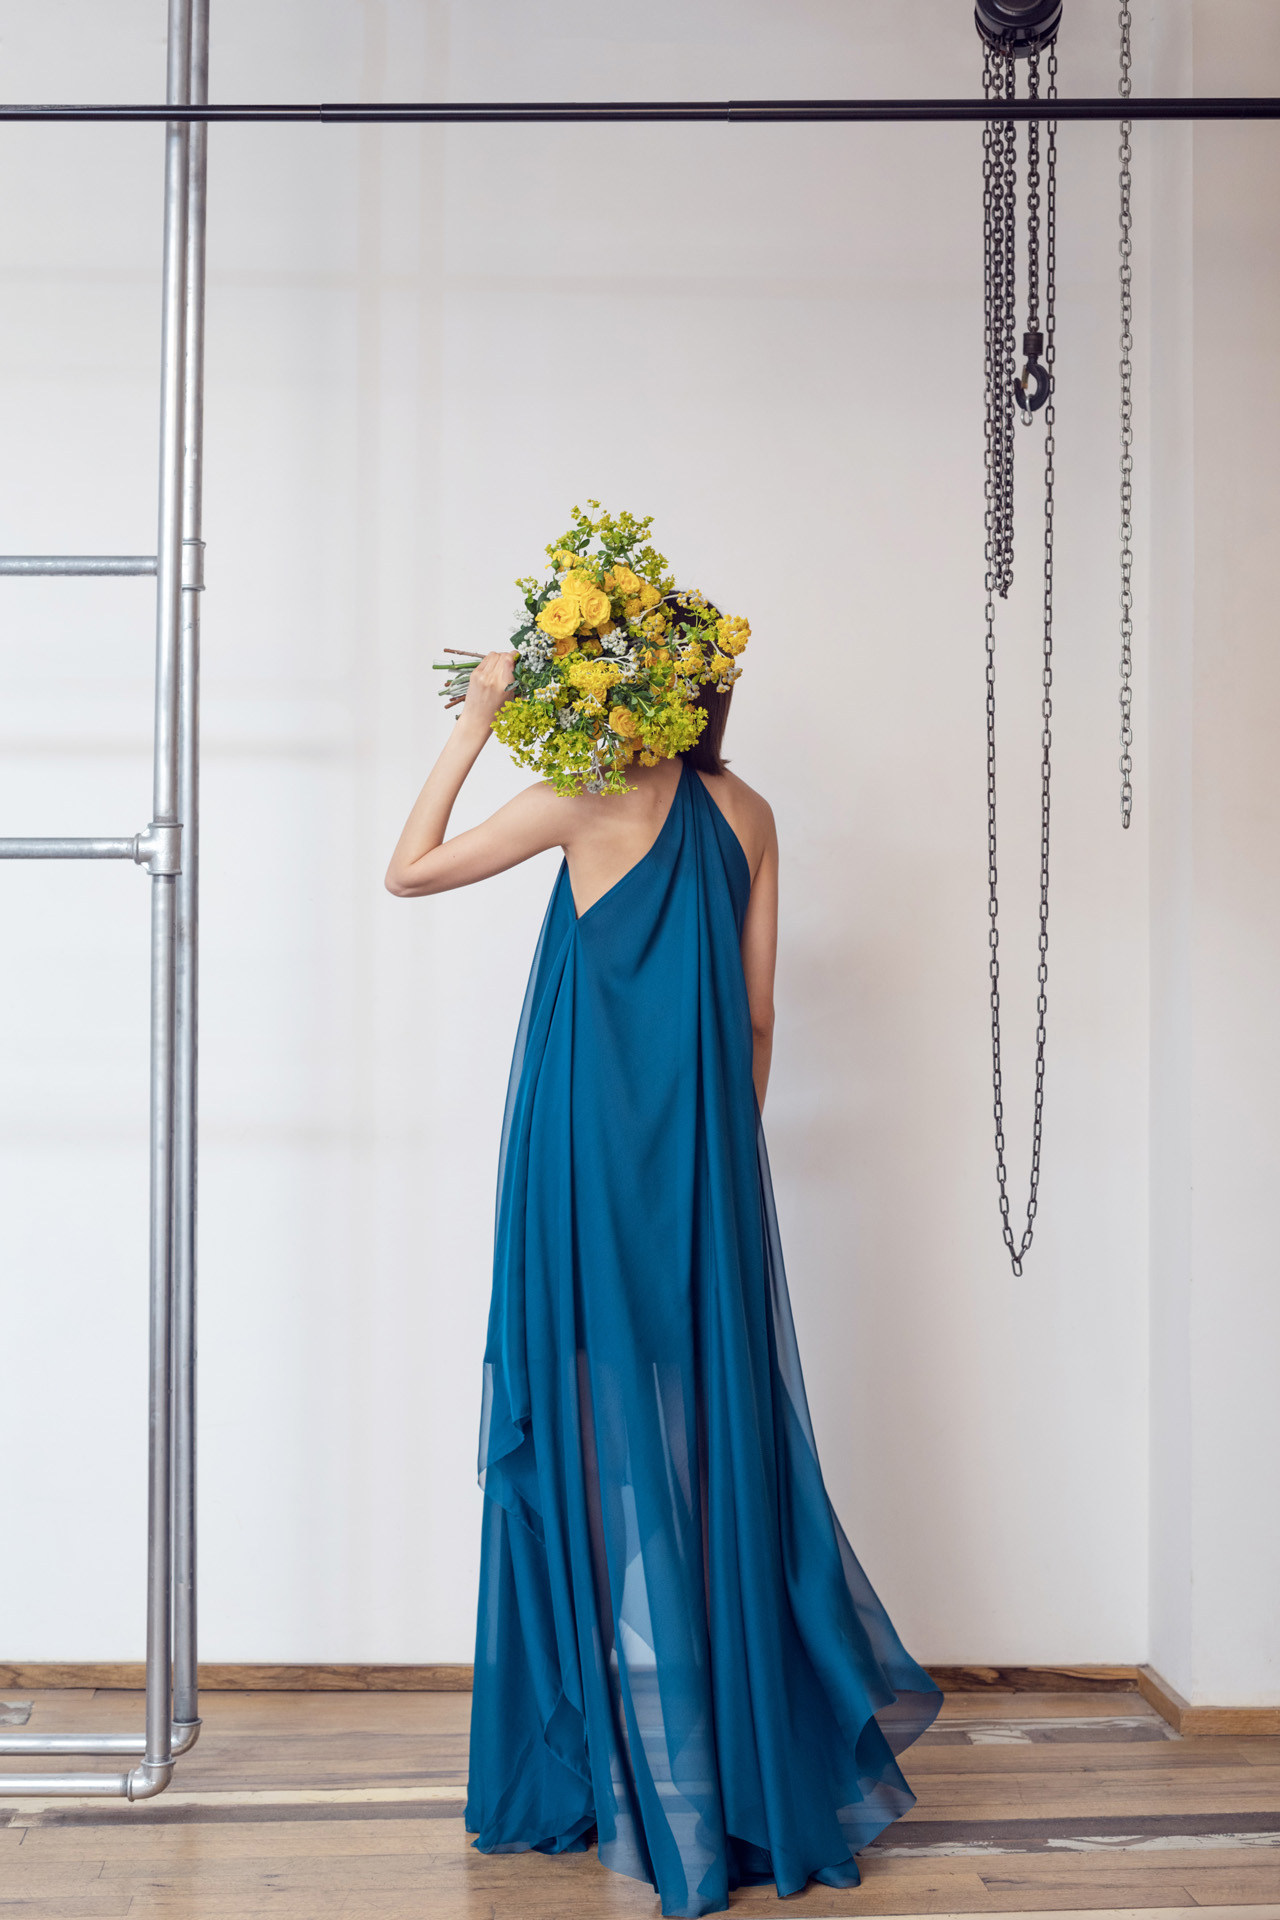 Lara Khoury | LK Stripped | Capsule 1-2019 | 11- Prussian Blue V-neck Maxi Dress 2.jpg